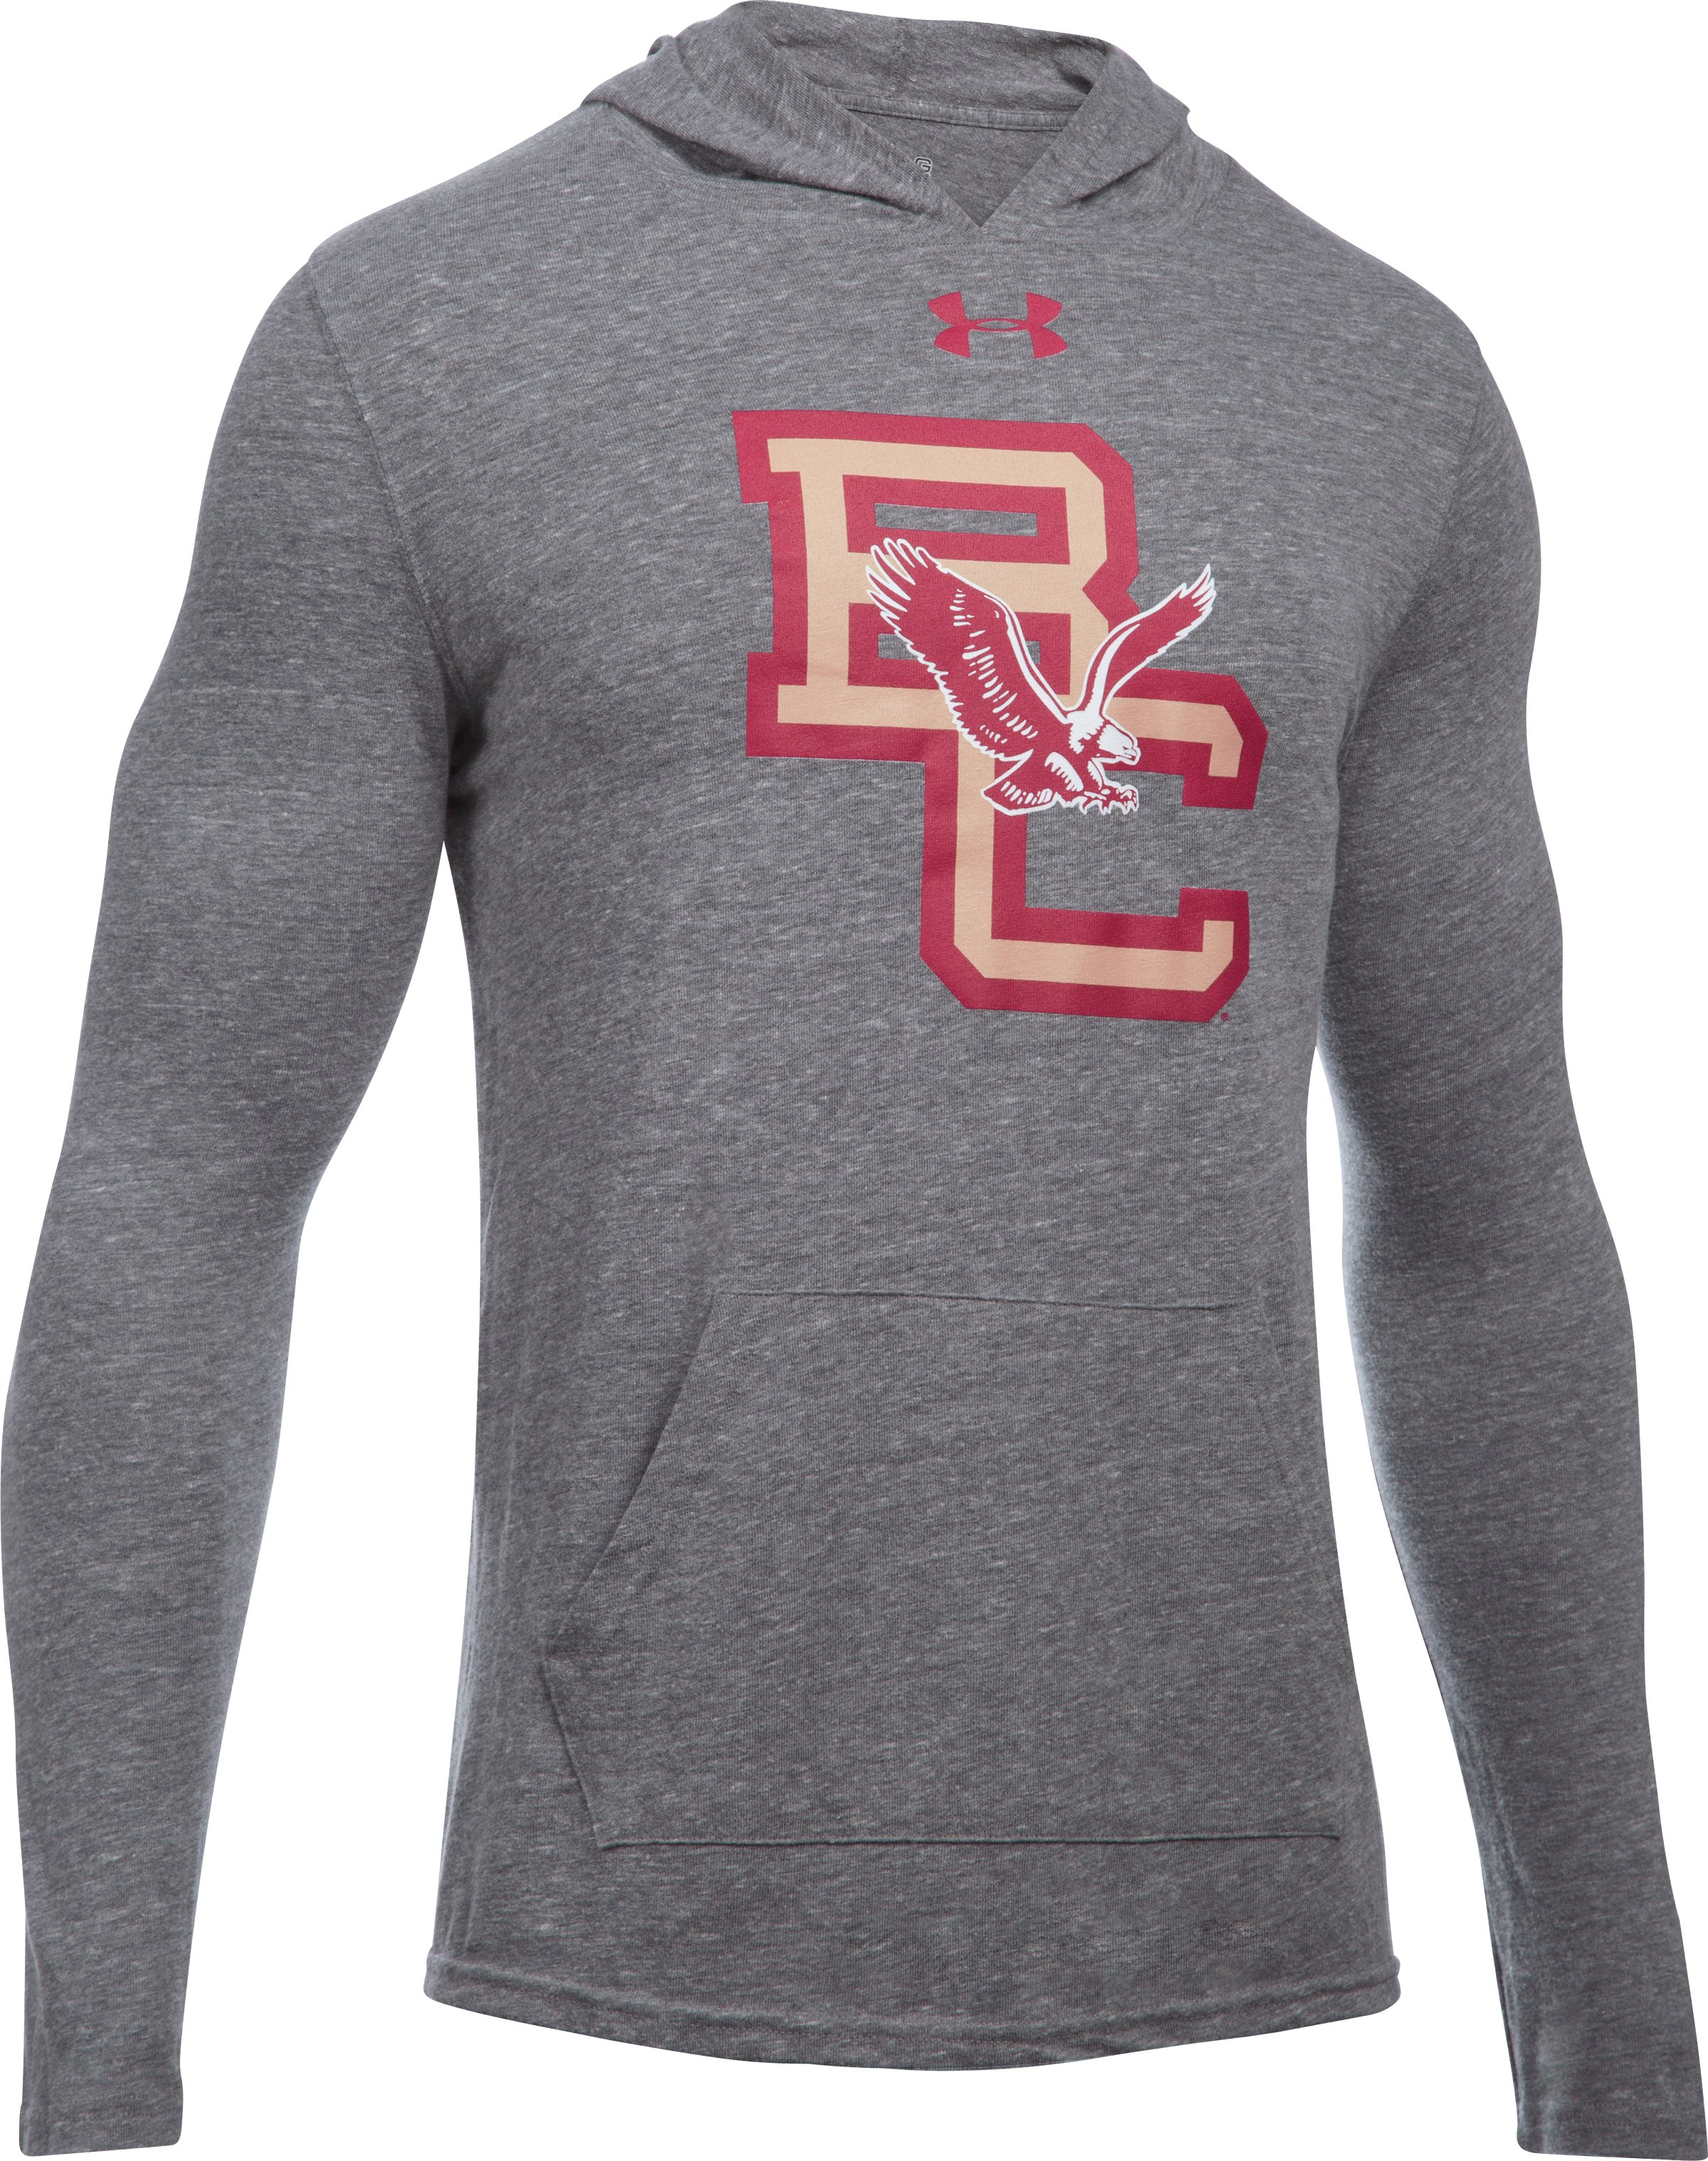 Men's Boston College UA Tri-Blend Hoodie, LEGACY GRAY HEATHER, undefined